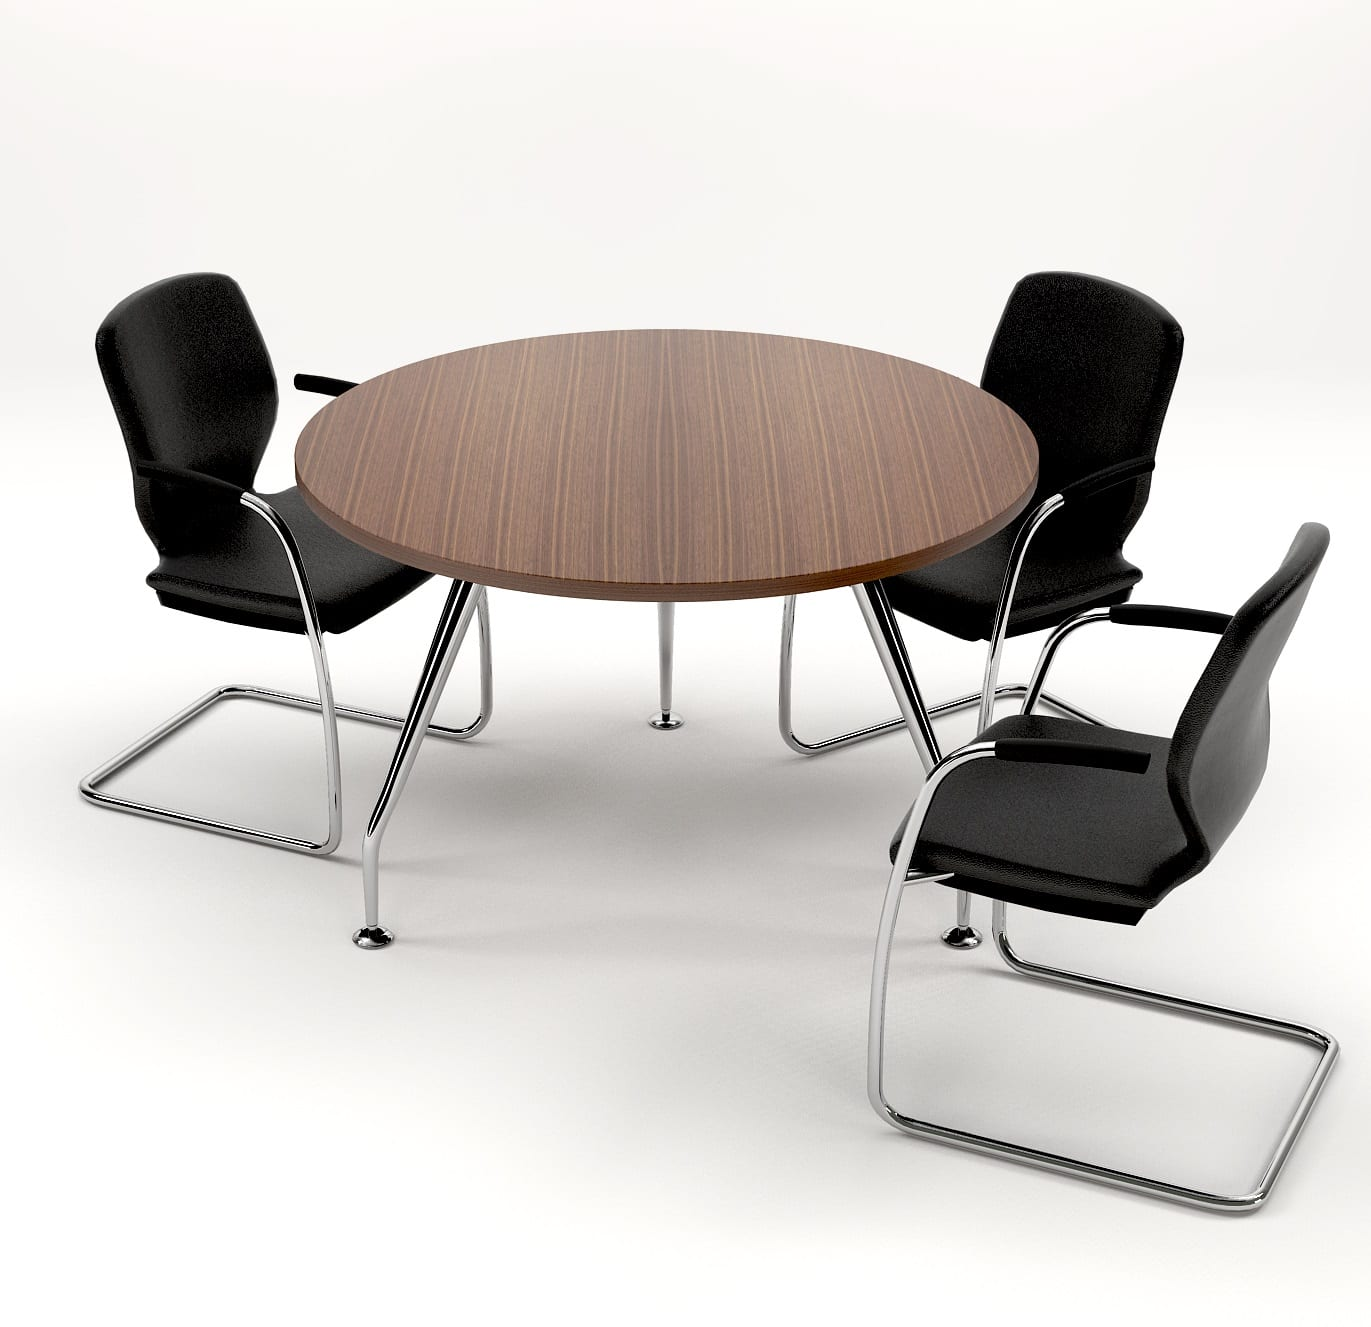 ZENITH 1200dia MEETING TABLE- ANGLE VIEW (2)